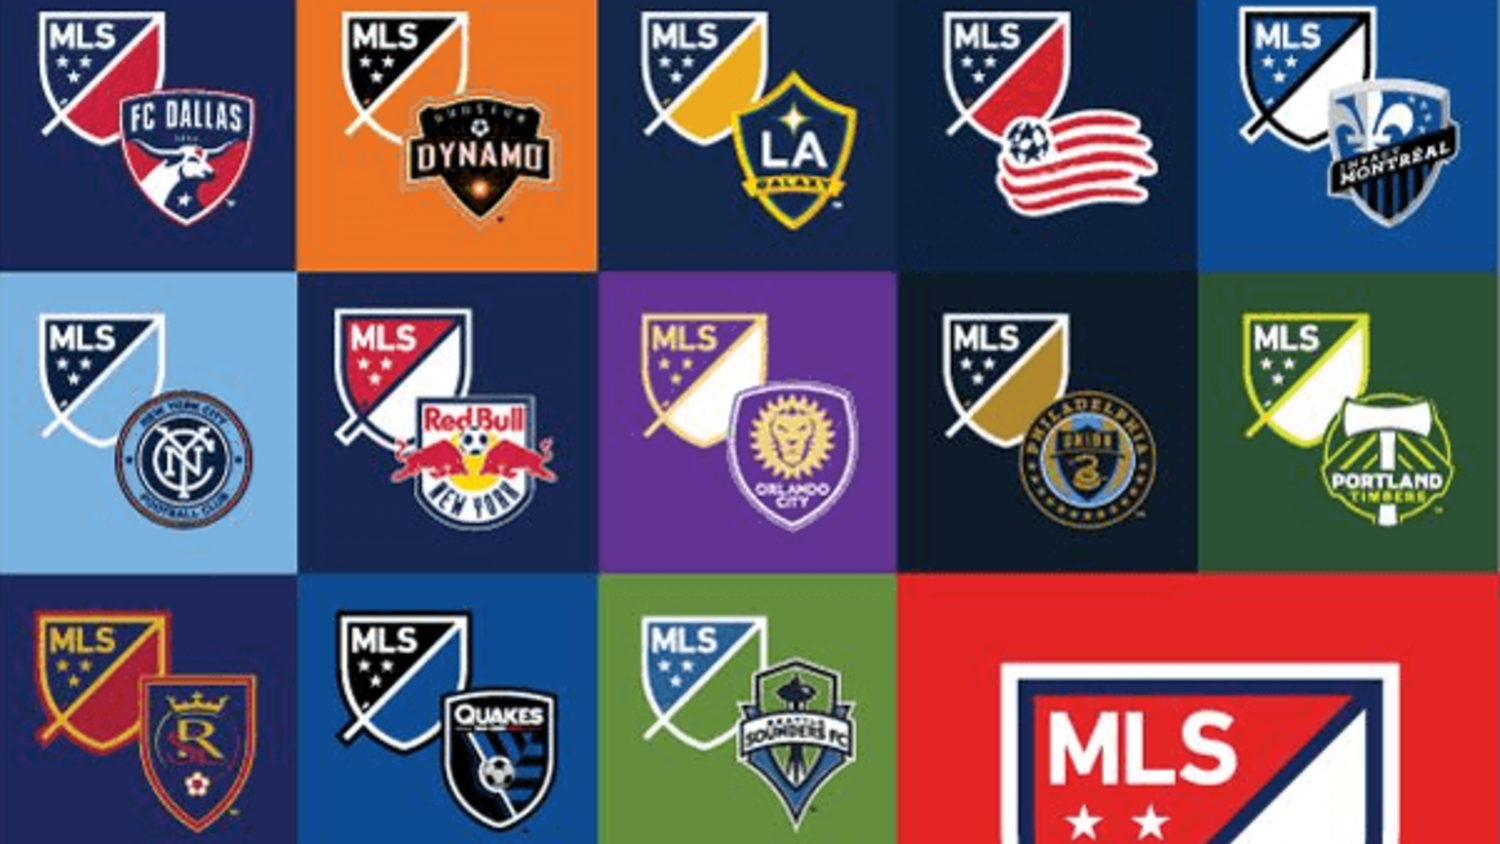 What's really behind 20 years of MLS success?